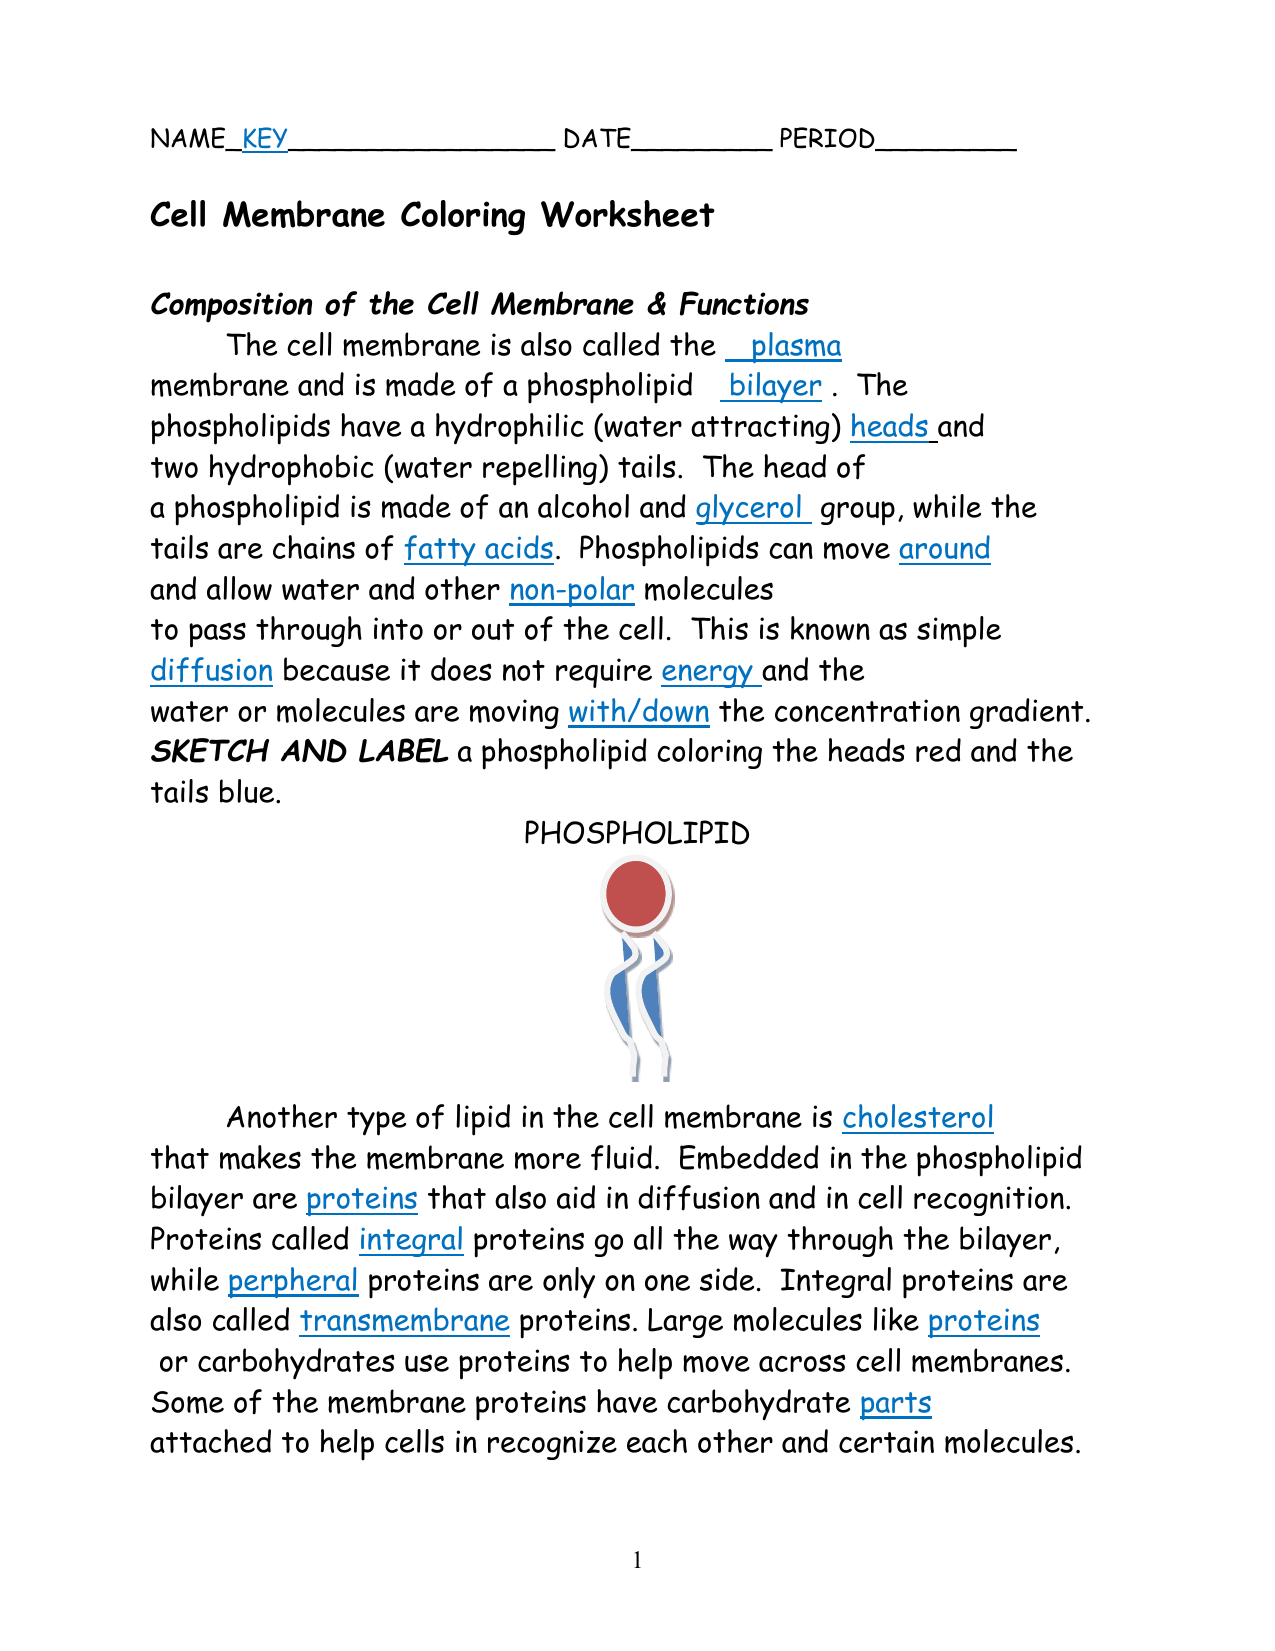 cell_membrane_coloring_worksheet_-_KEY